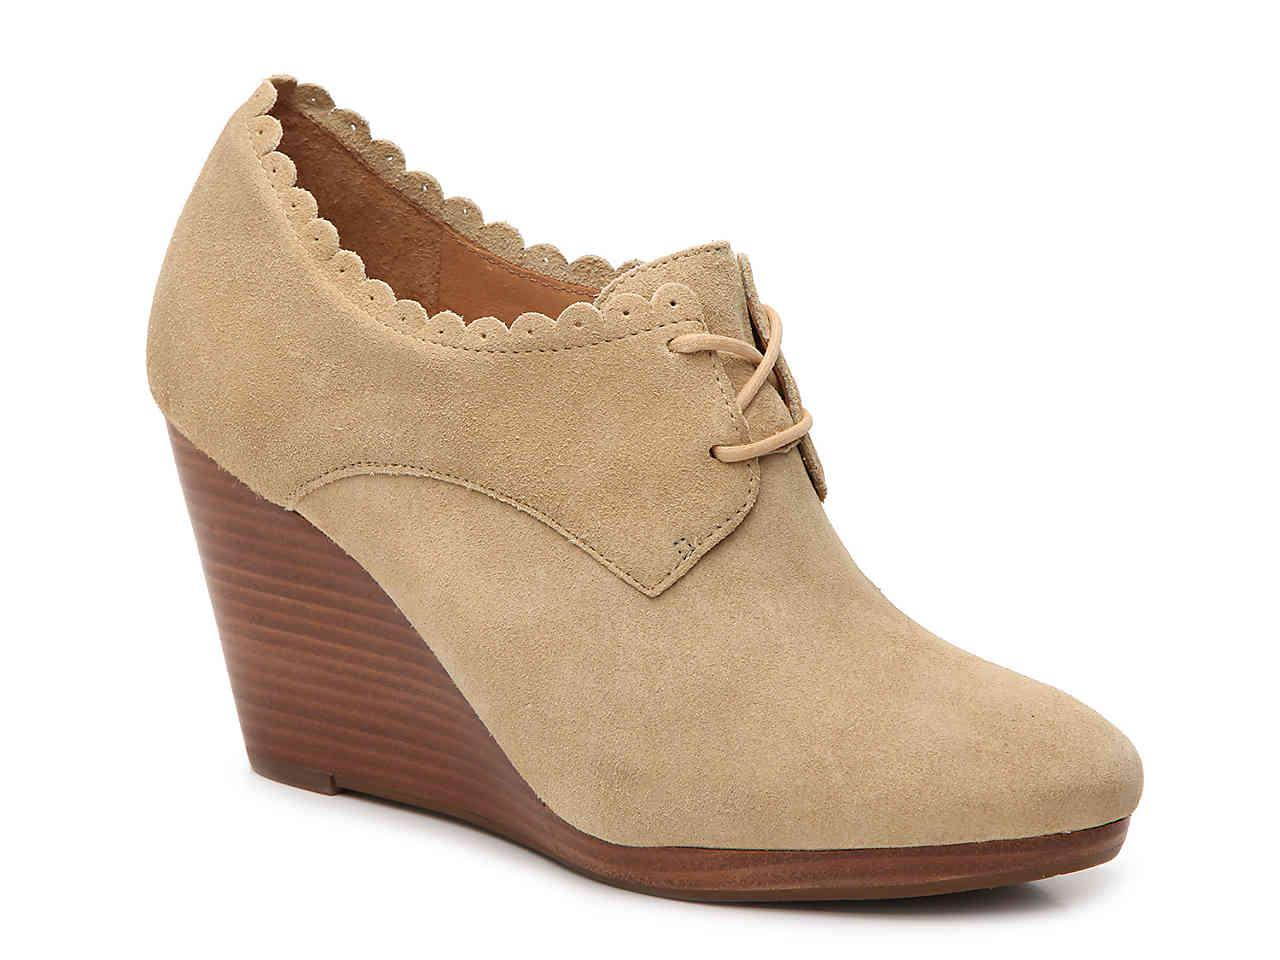 c08ebaba9f4 Lyst - Jack Rogers Olivia Wedge Bootie in Natural